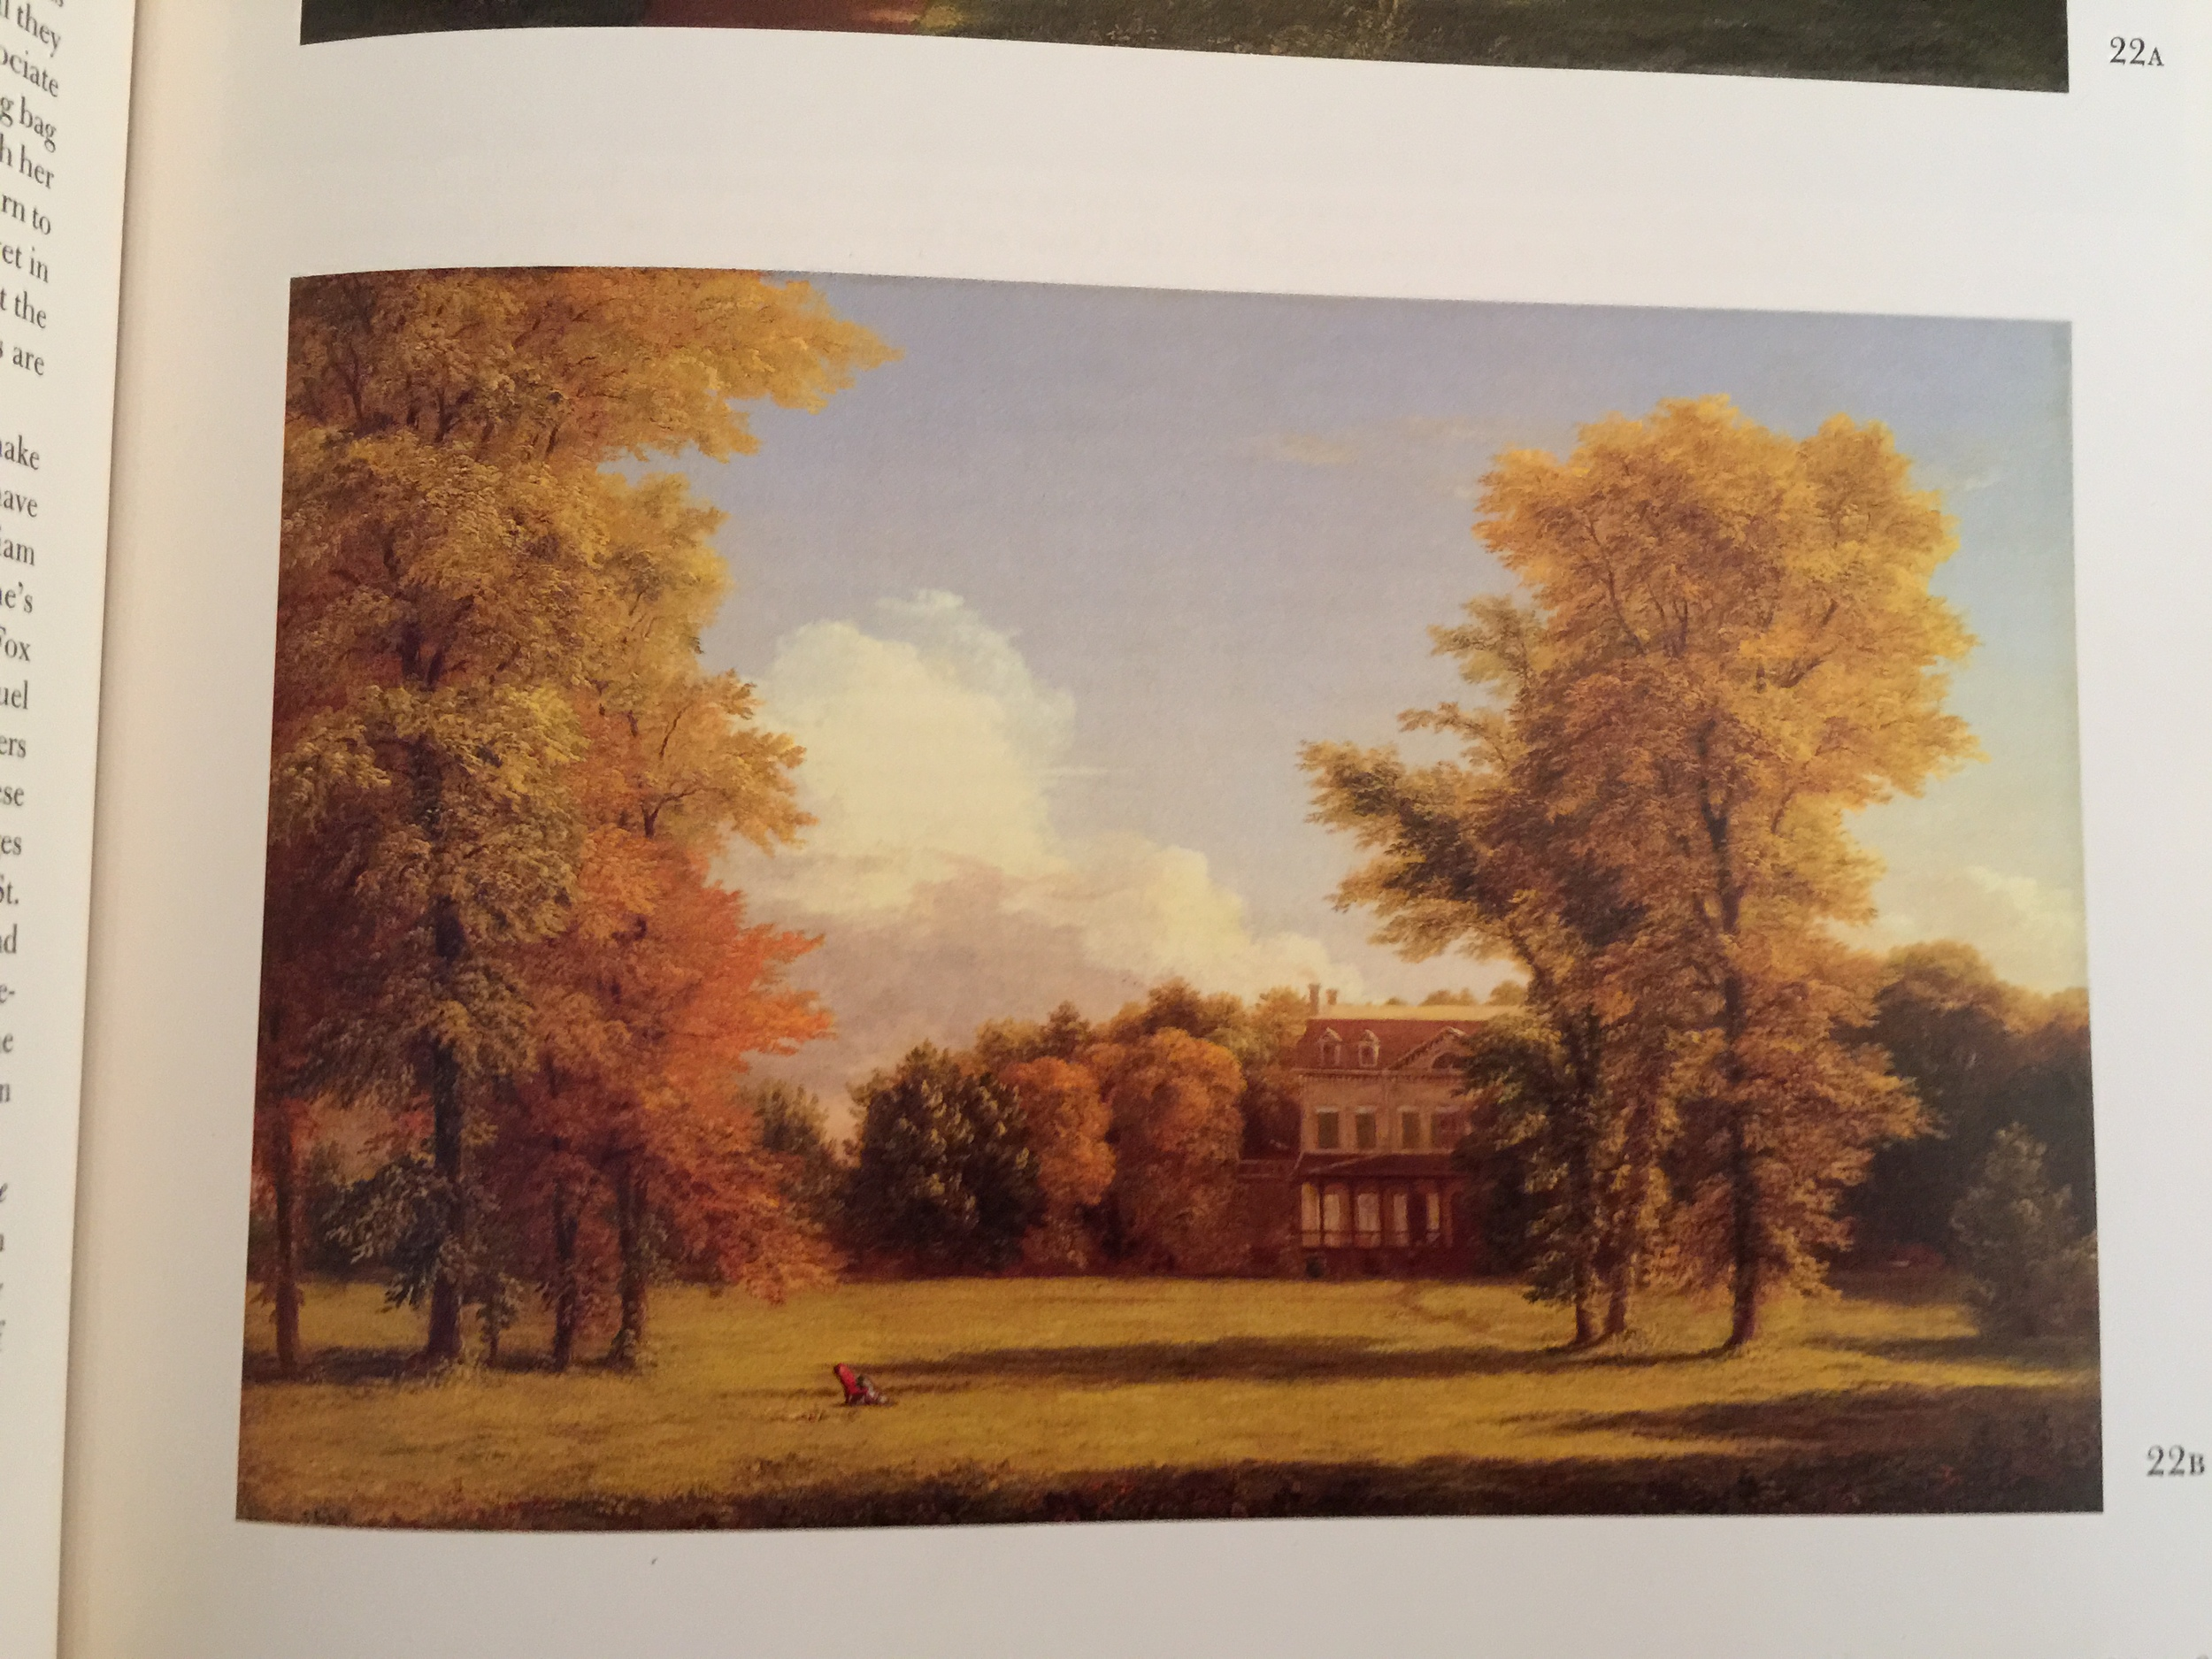 Gardens of the Rensselaer Manor House: Thomas Cole (1801-1848)